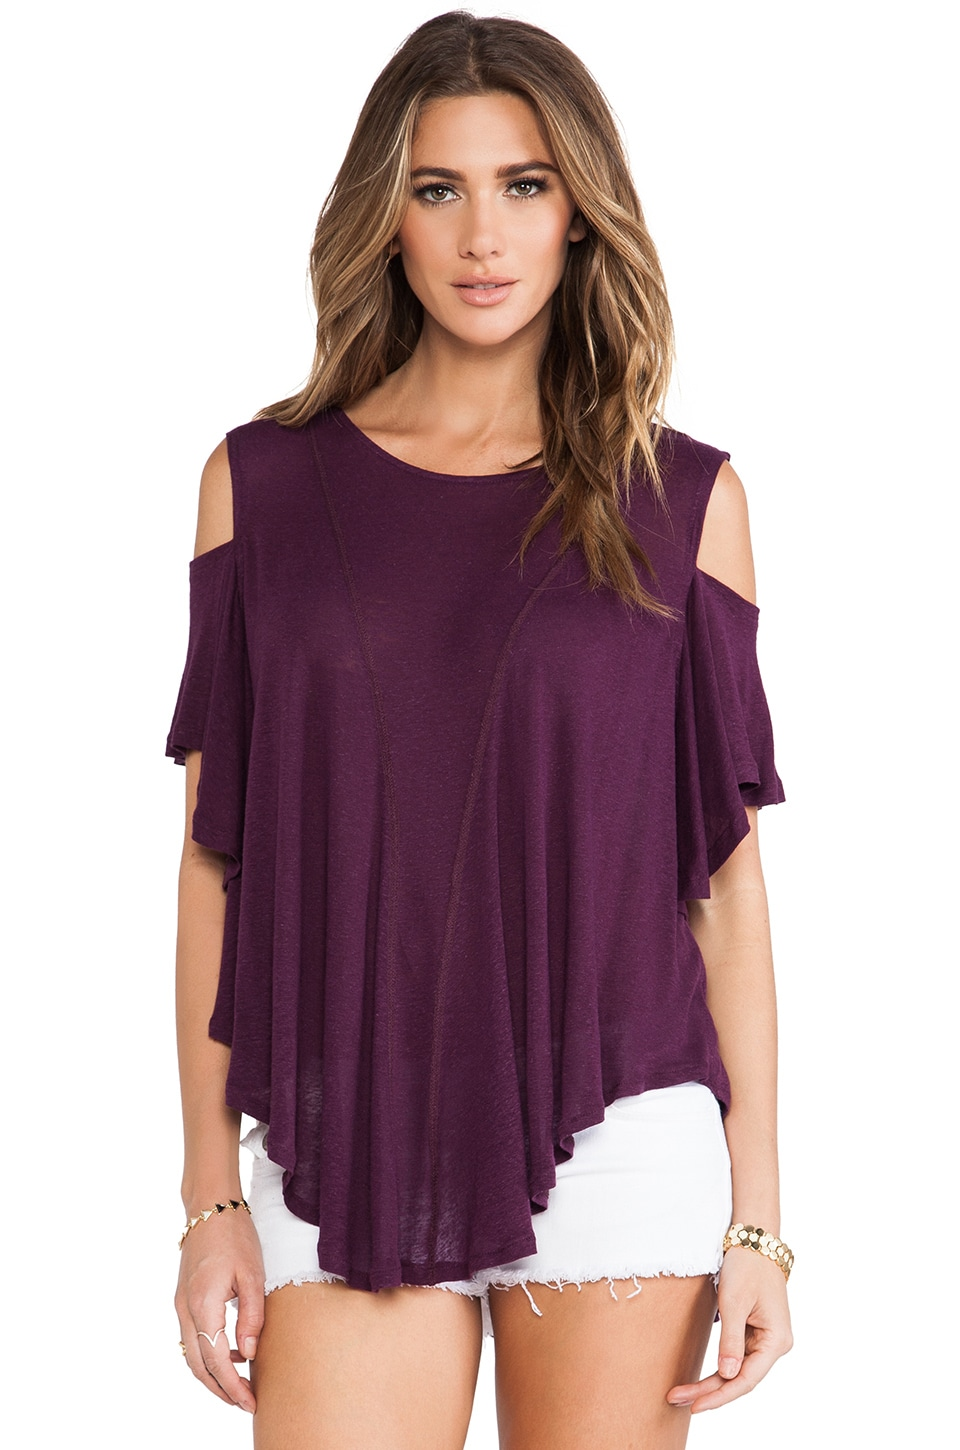 Free People Cold Shoulder Top in Aubergine